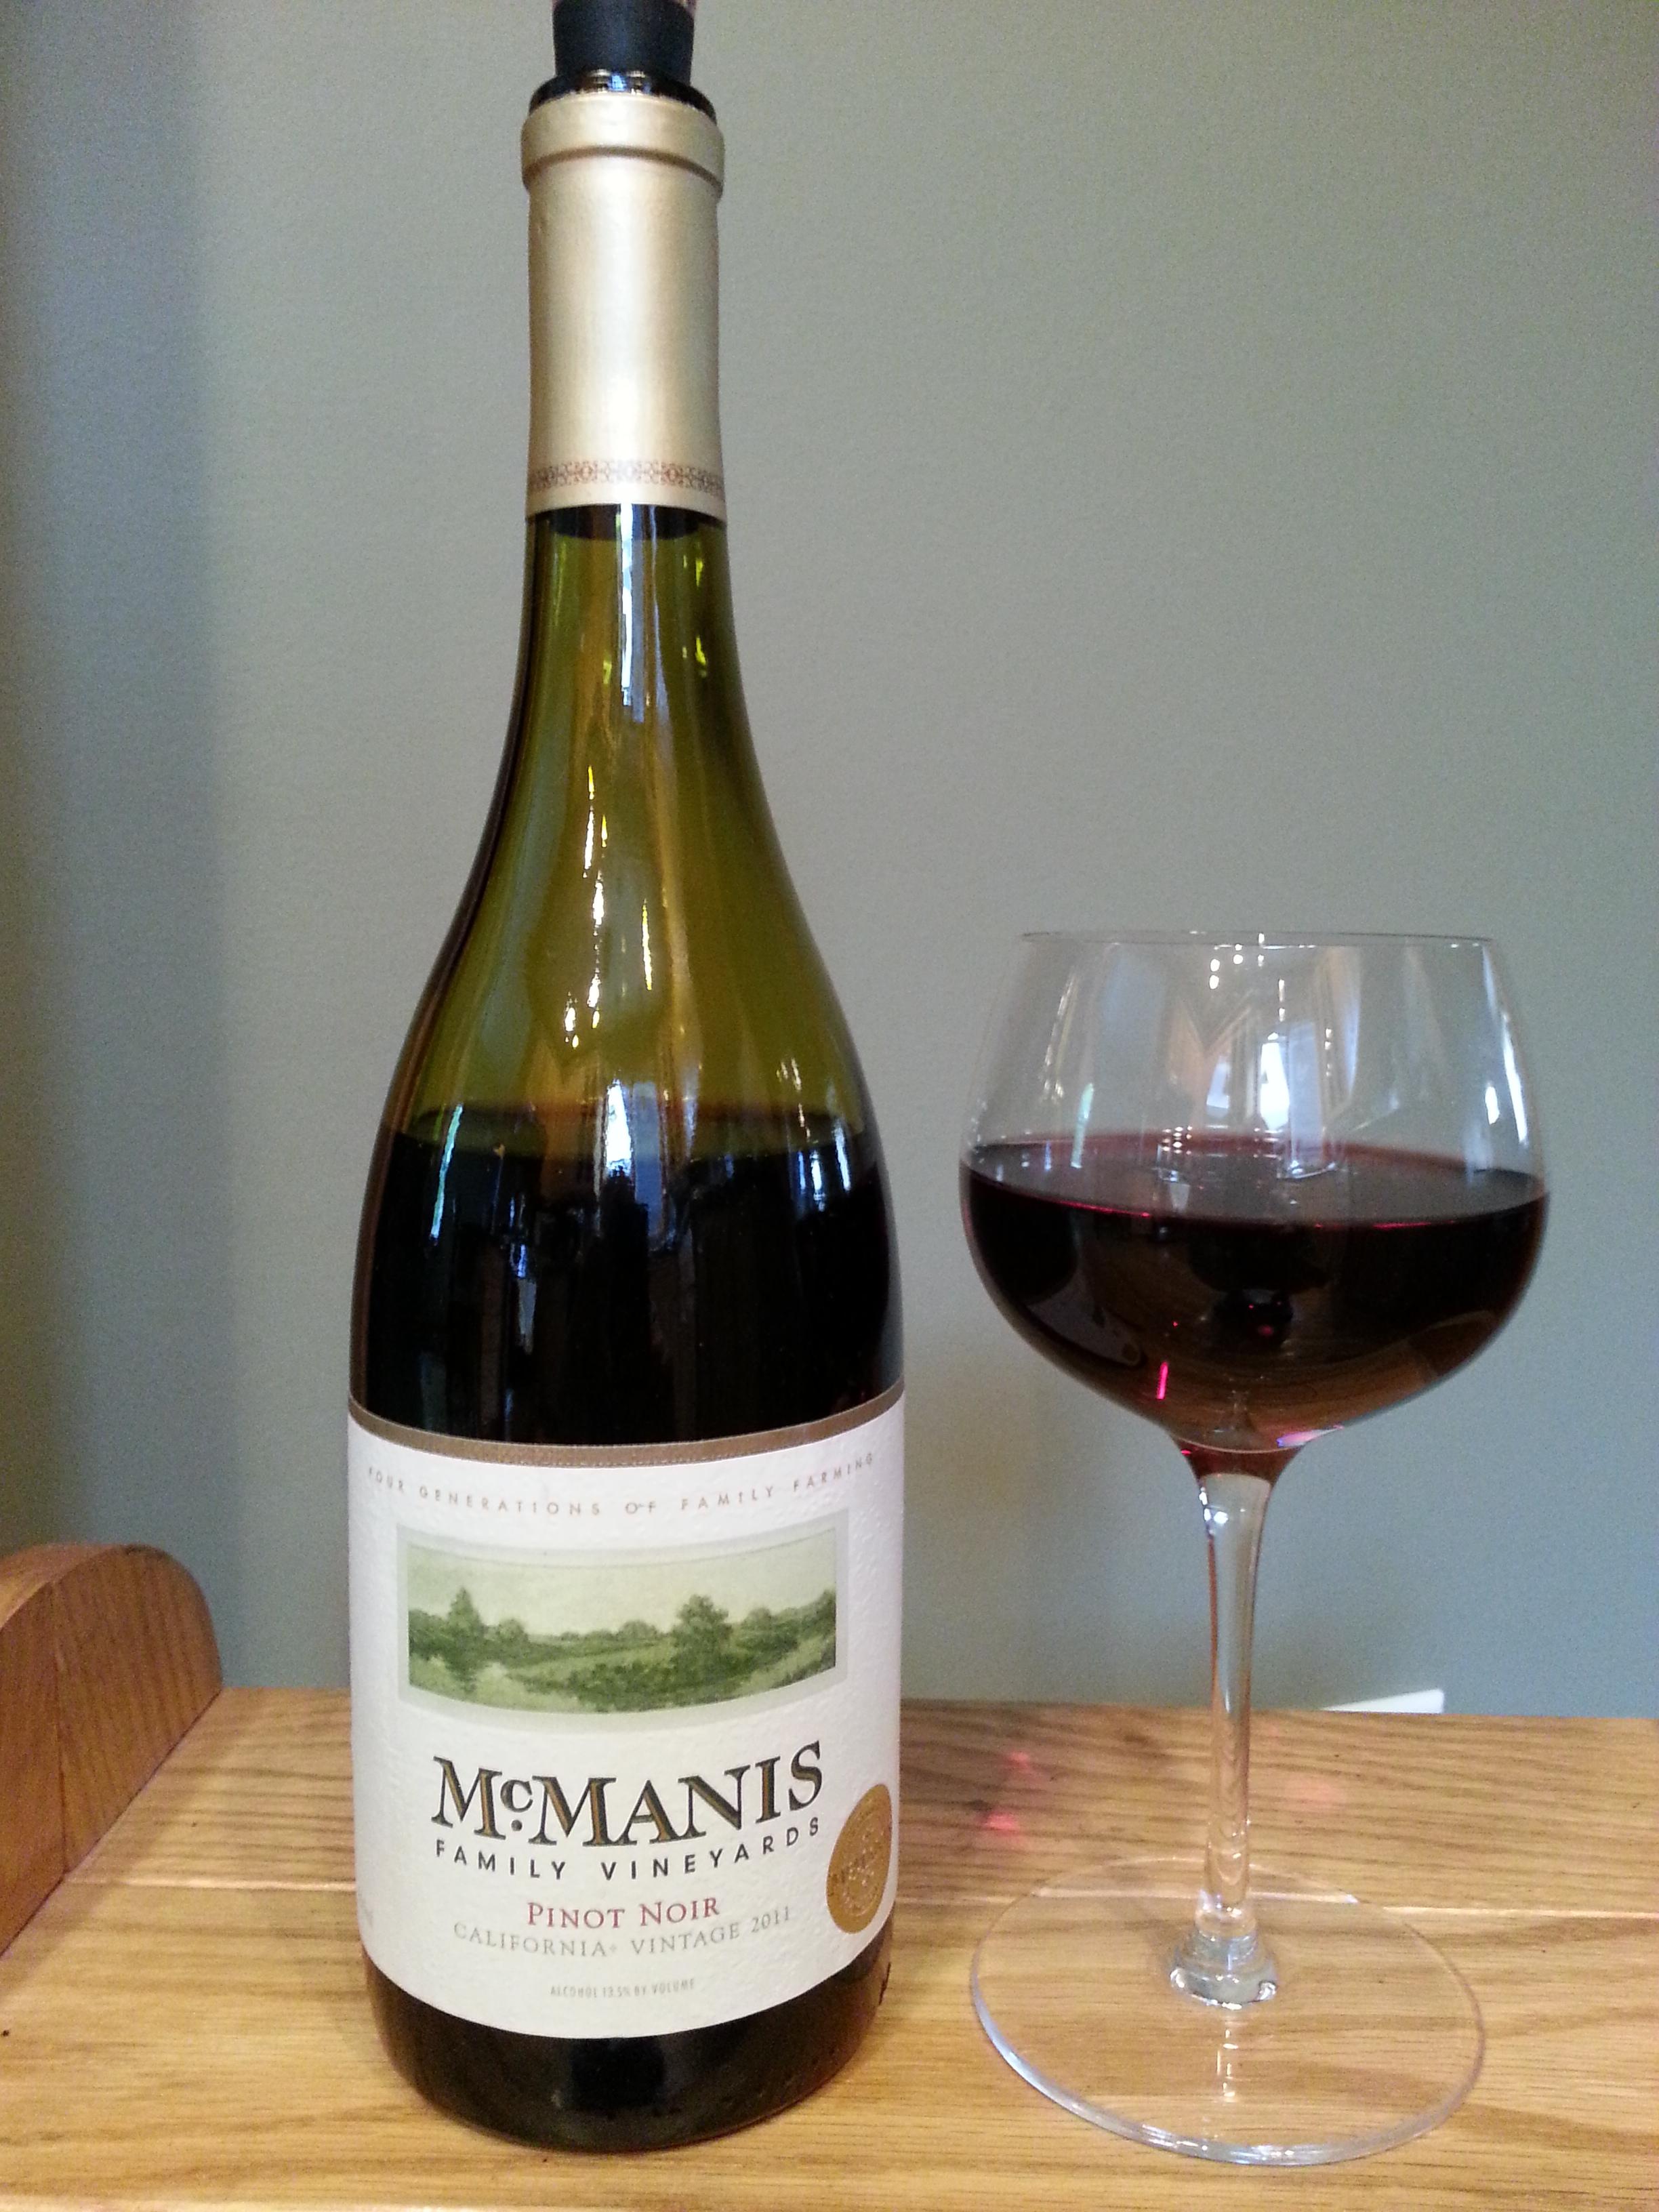 McManis Family Vineyards Pinot Noir (2011)